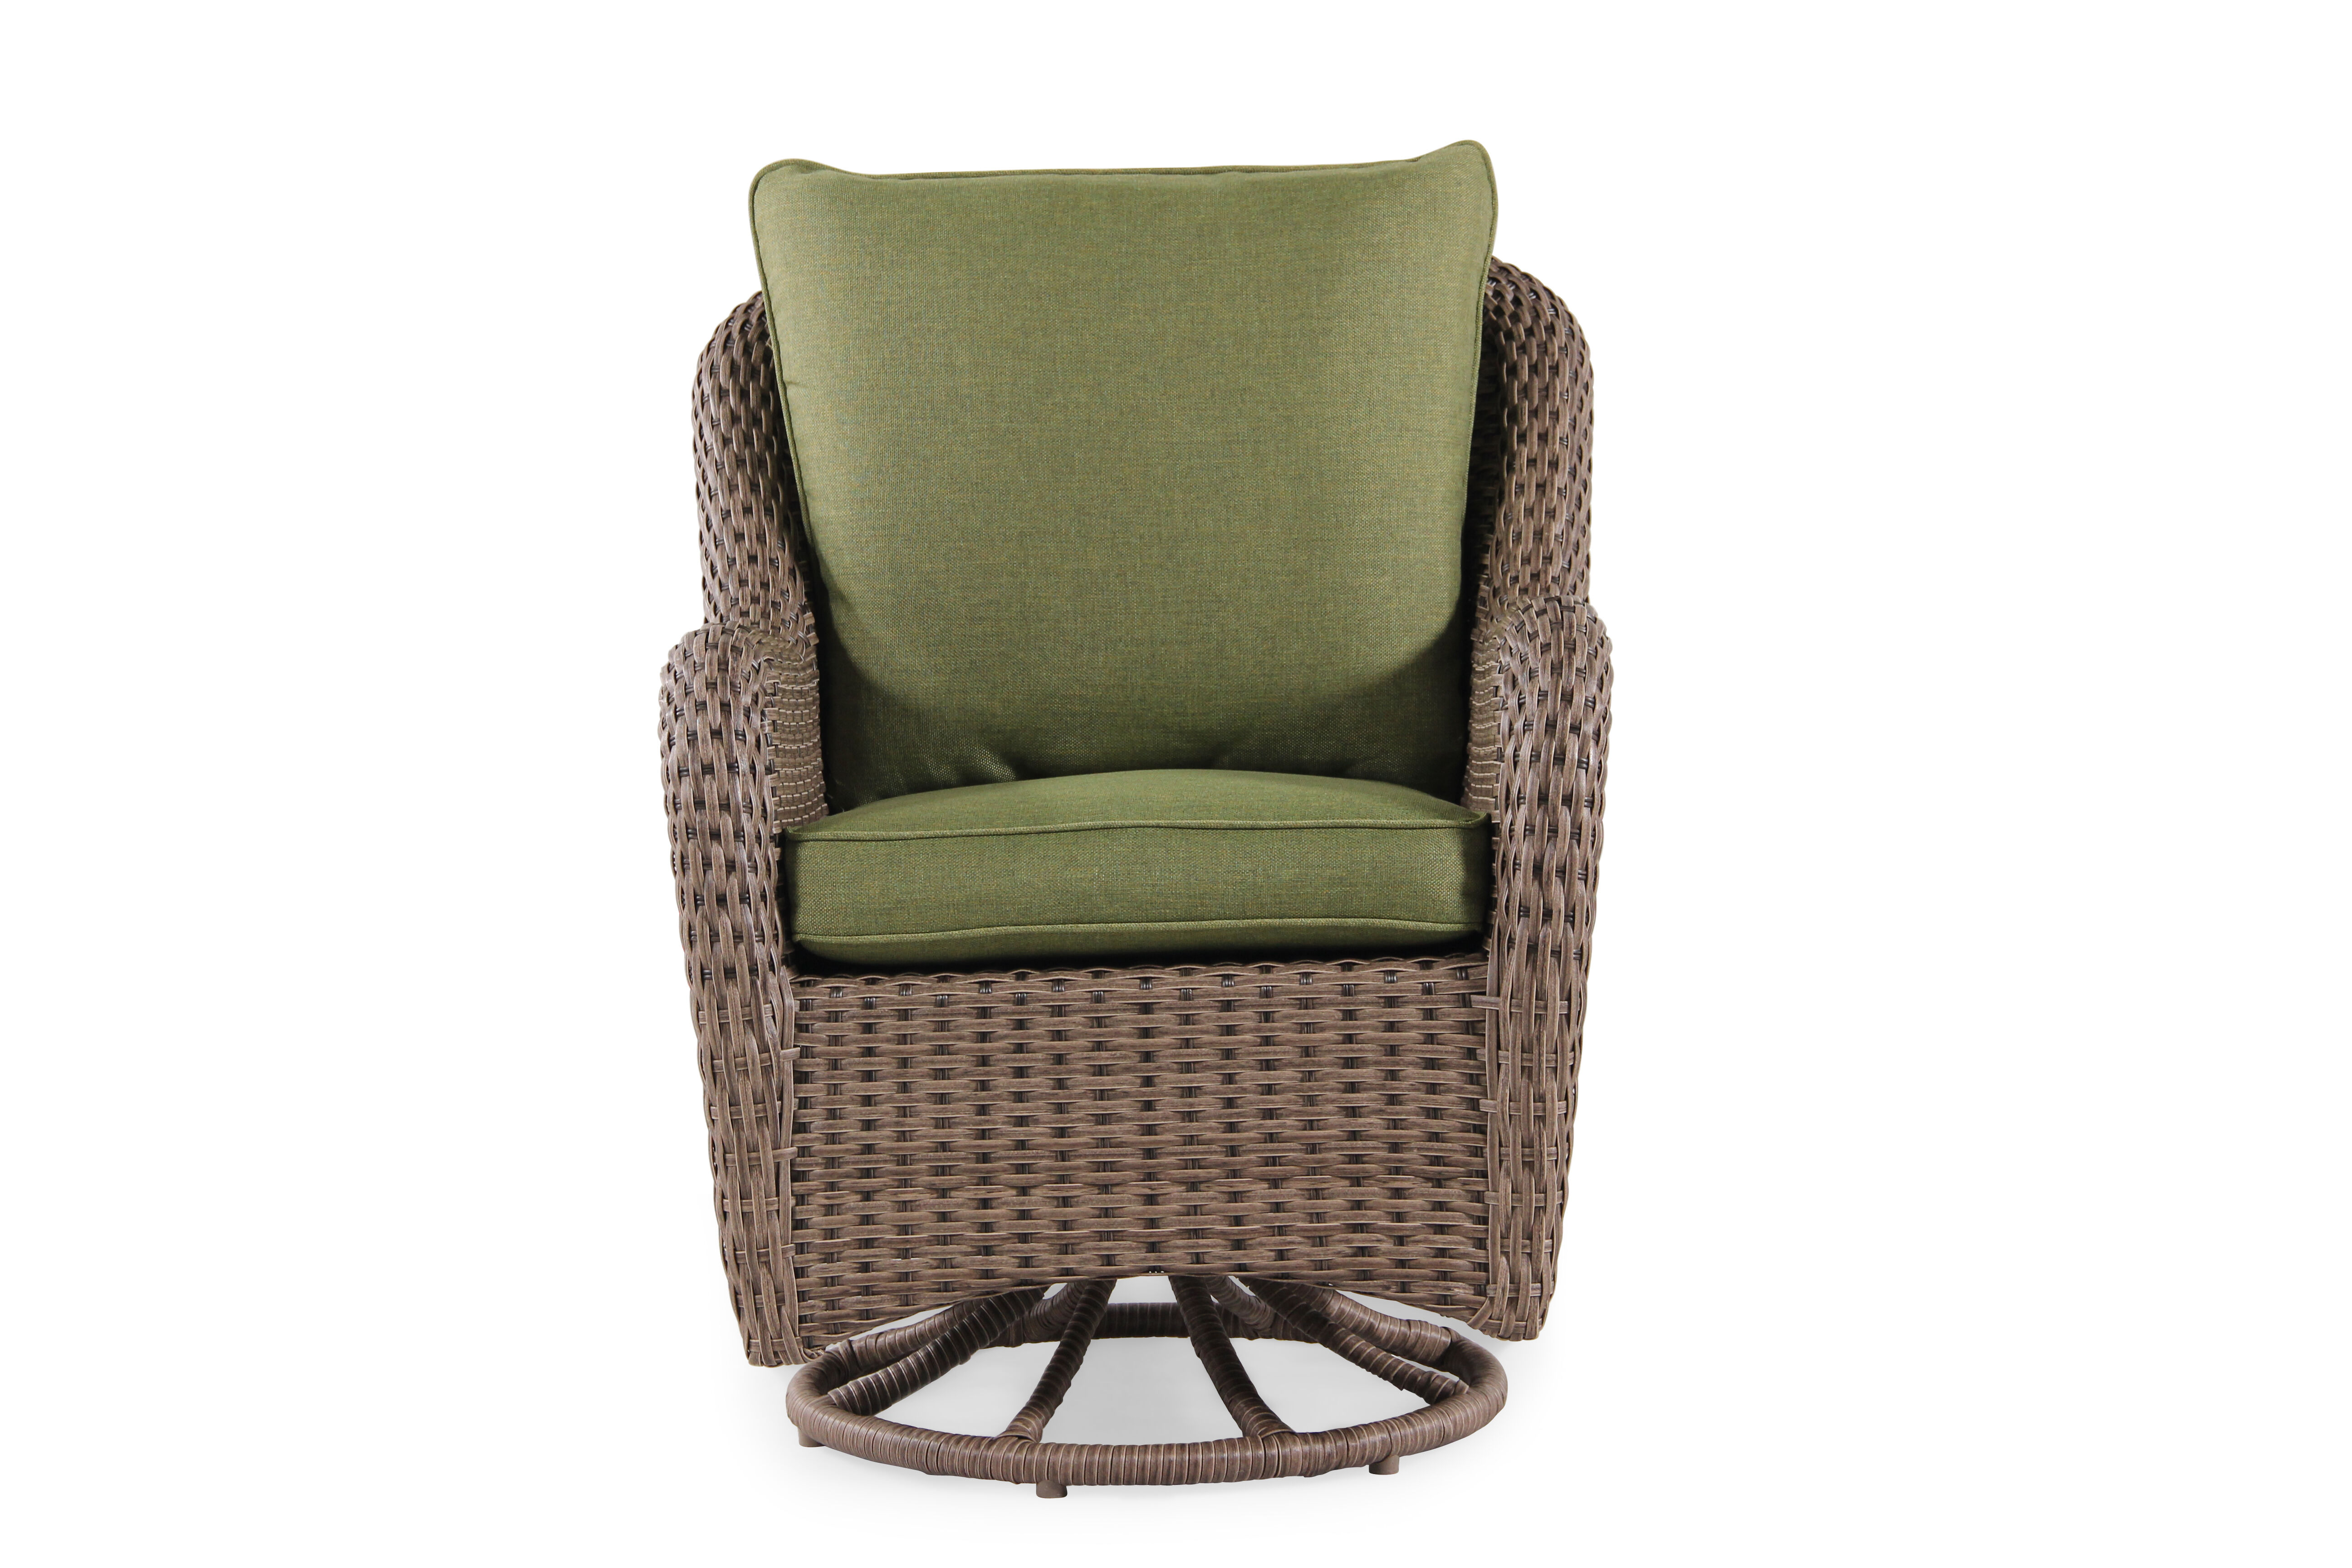 Swivel Dining Chairs Contemporary Woven Swivel Dining Chair In Olive Mathis